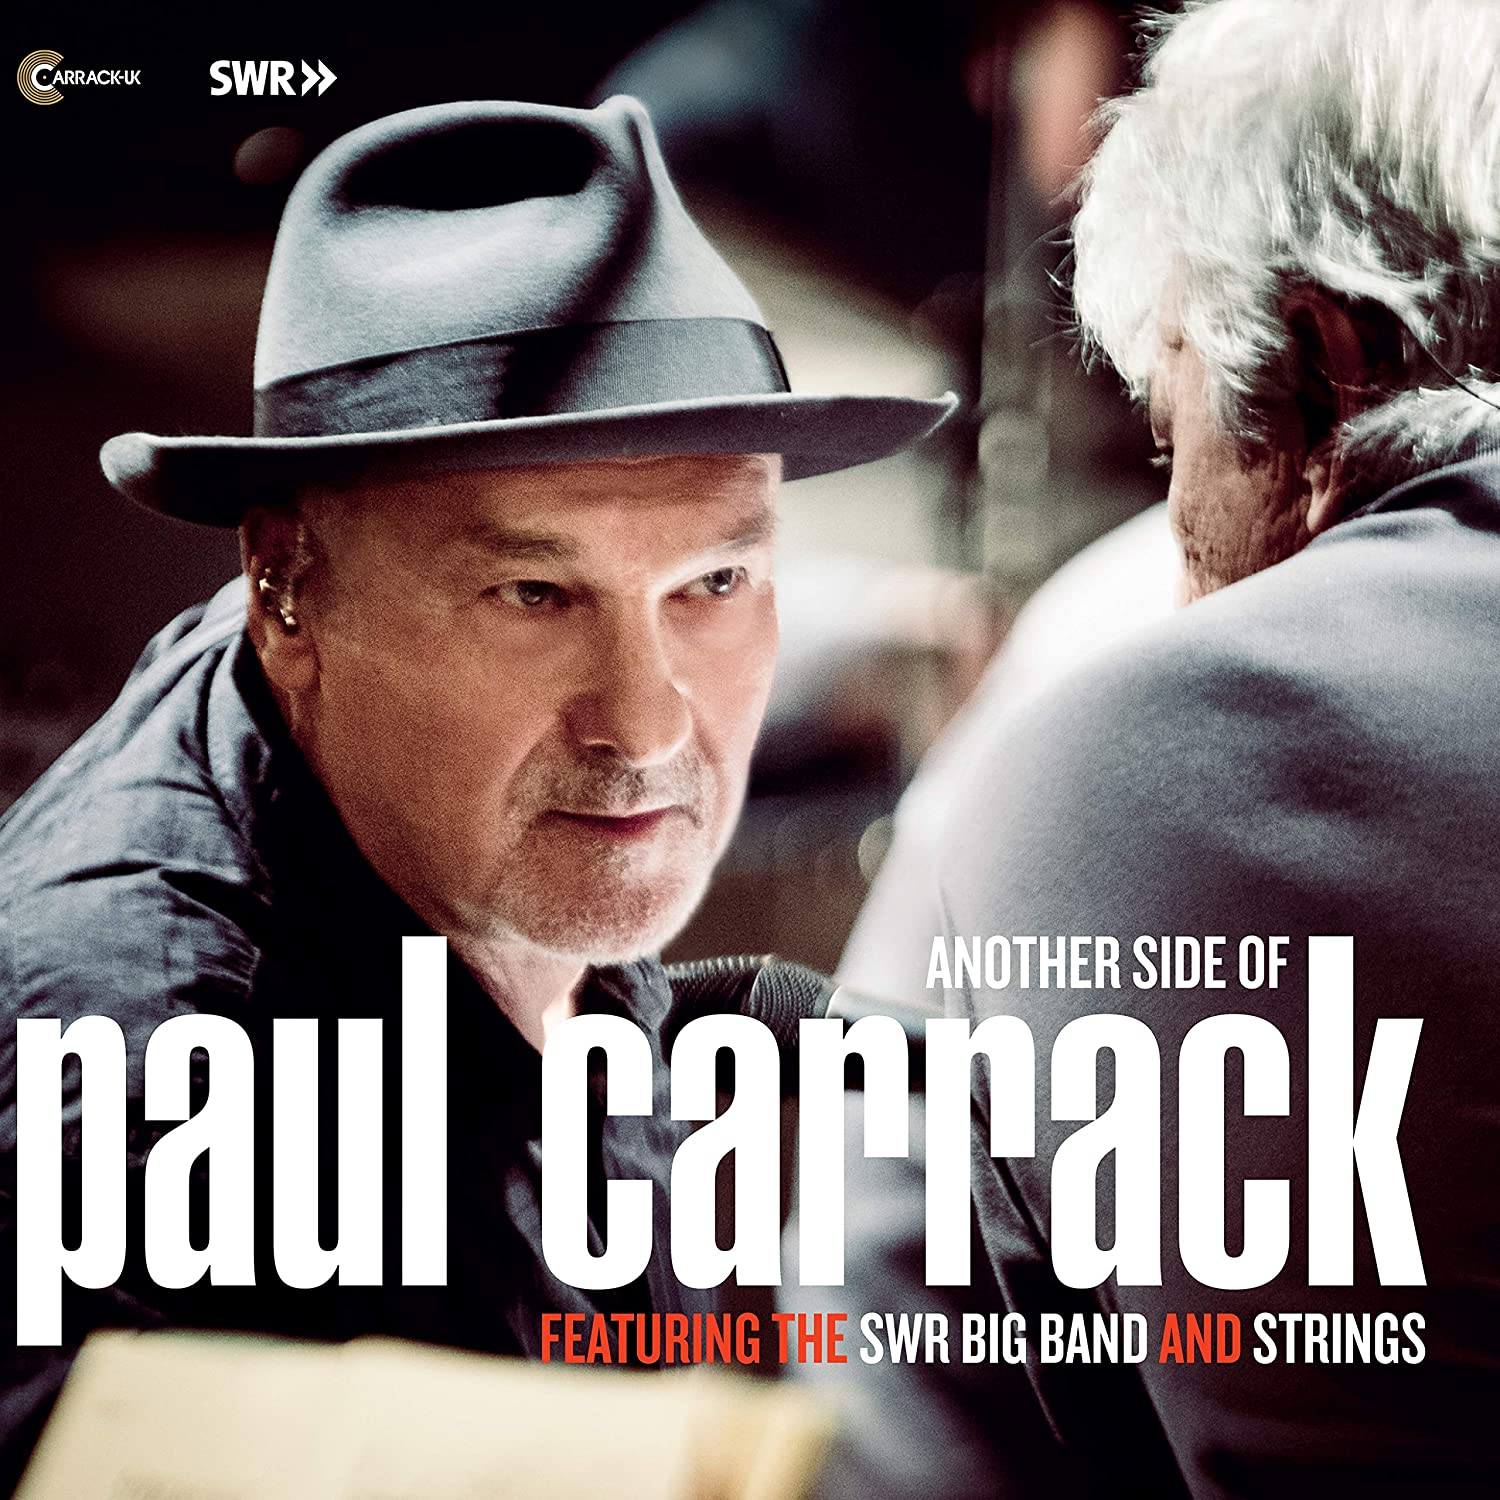 Paul Carrack - CD & The SWR Big Band And Strings - Another Side Of Paul Carrack